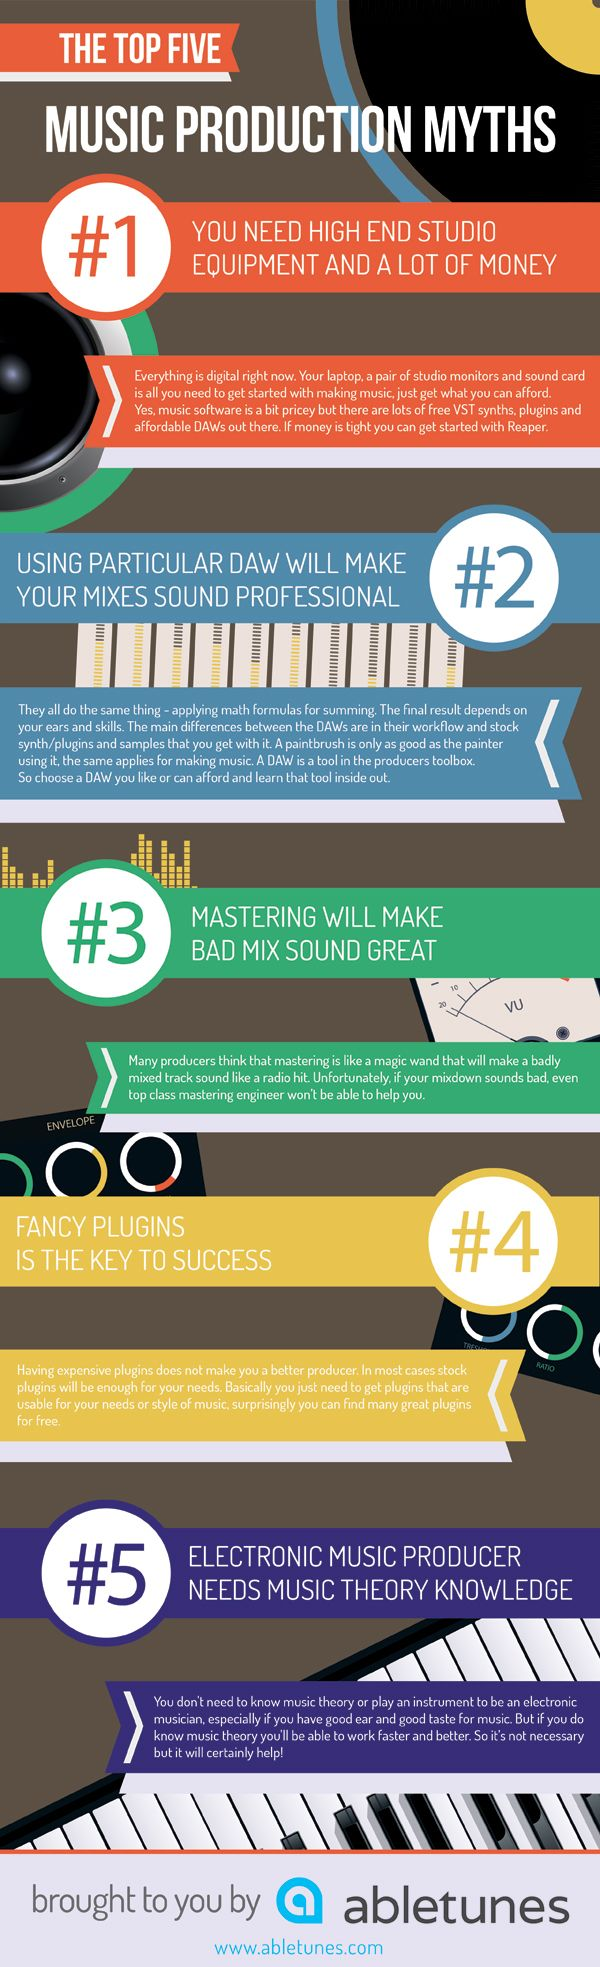 The Top Five Music Production Myths   #Infographic #MusicProduction #Myths